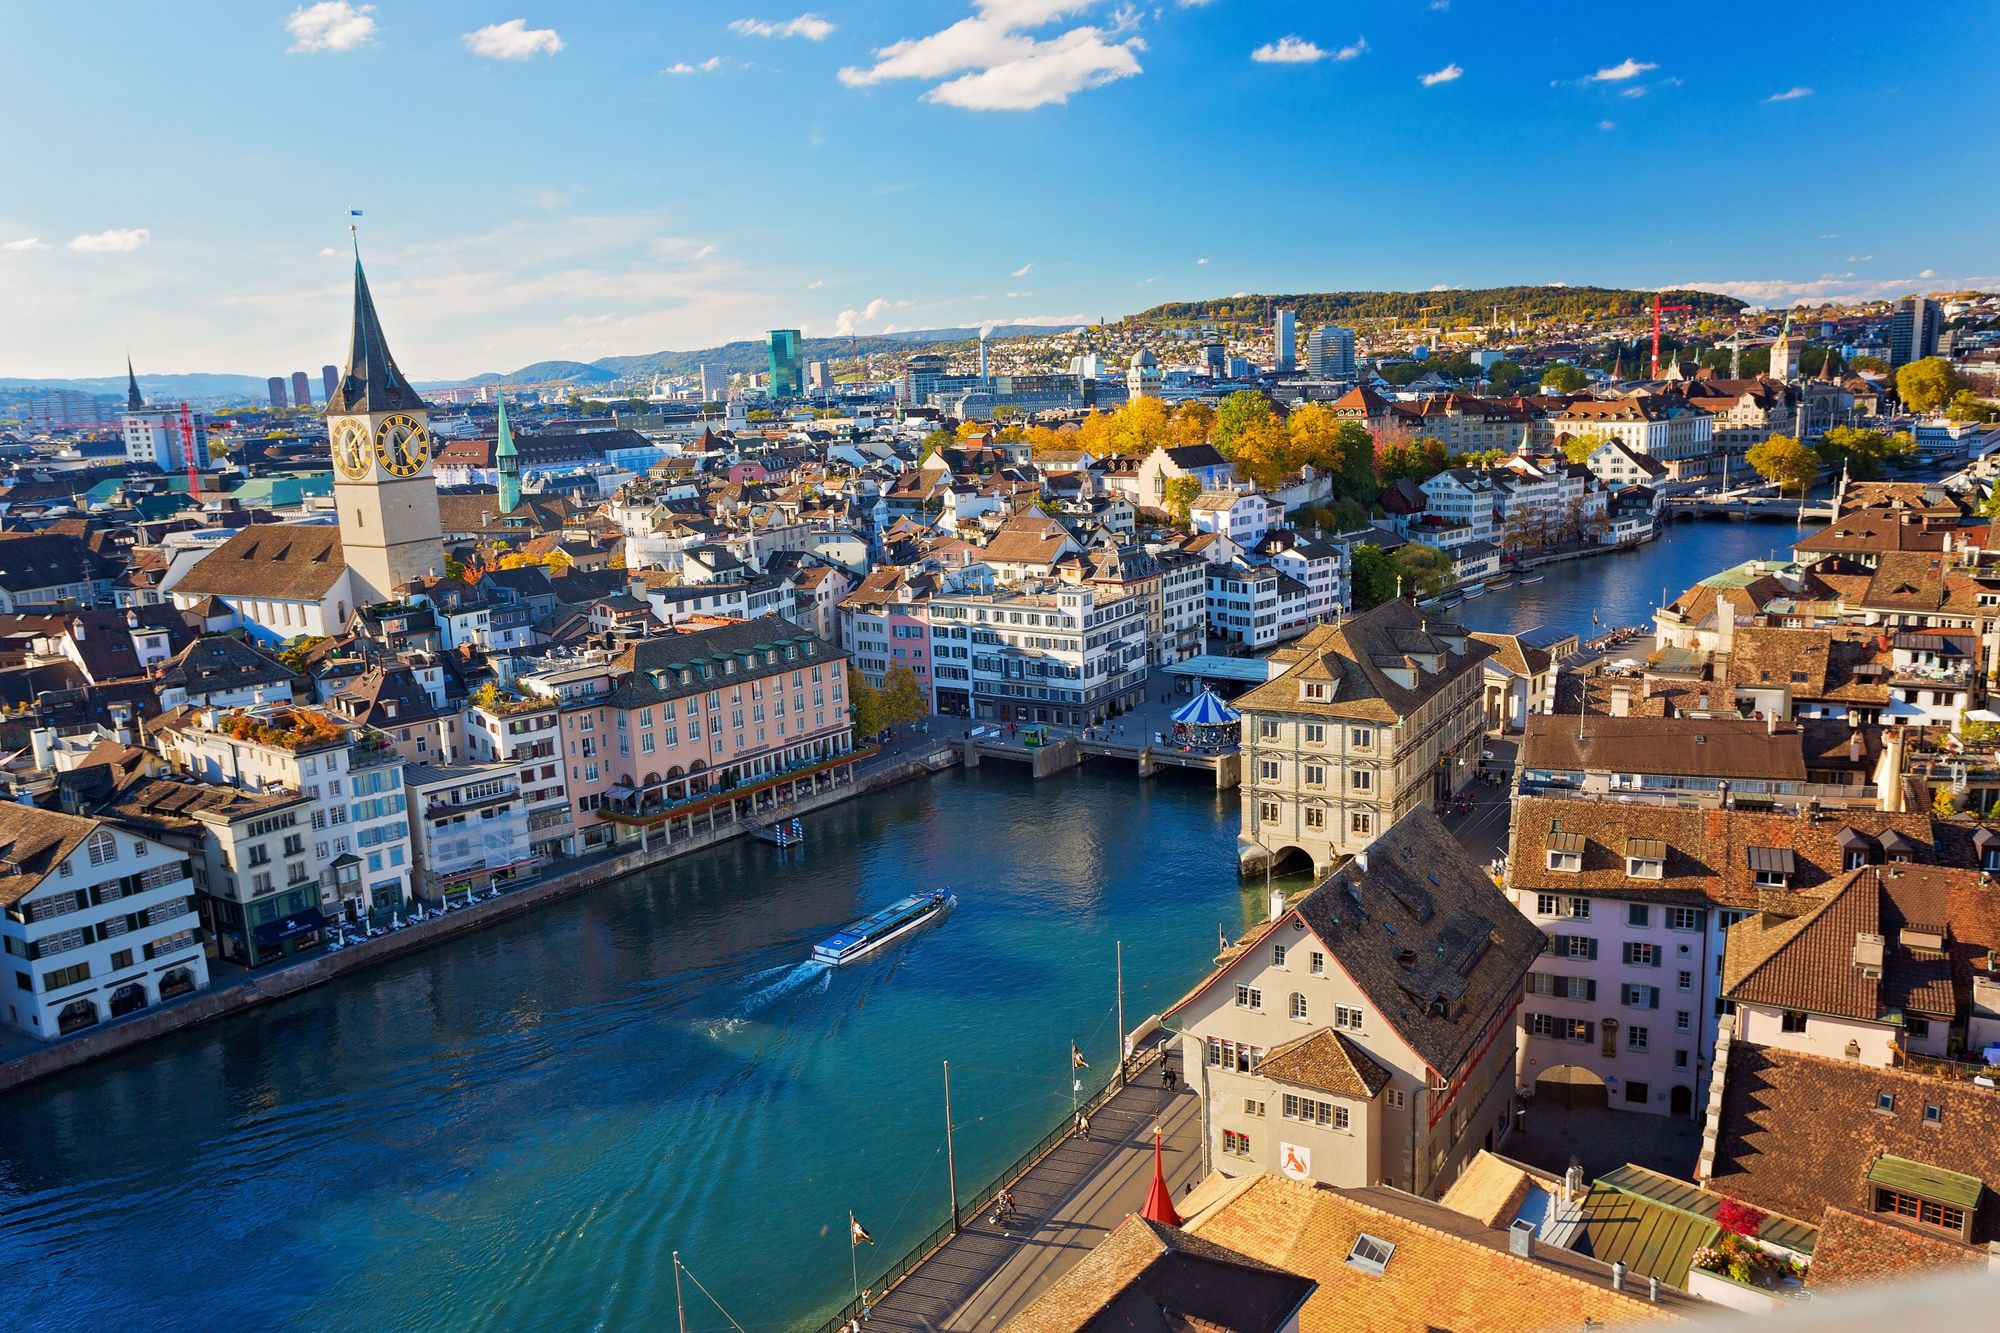 DAIMANI picked as one of the top ten Zurich start-ups to watch for the future